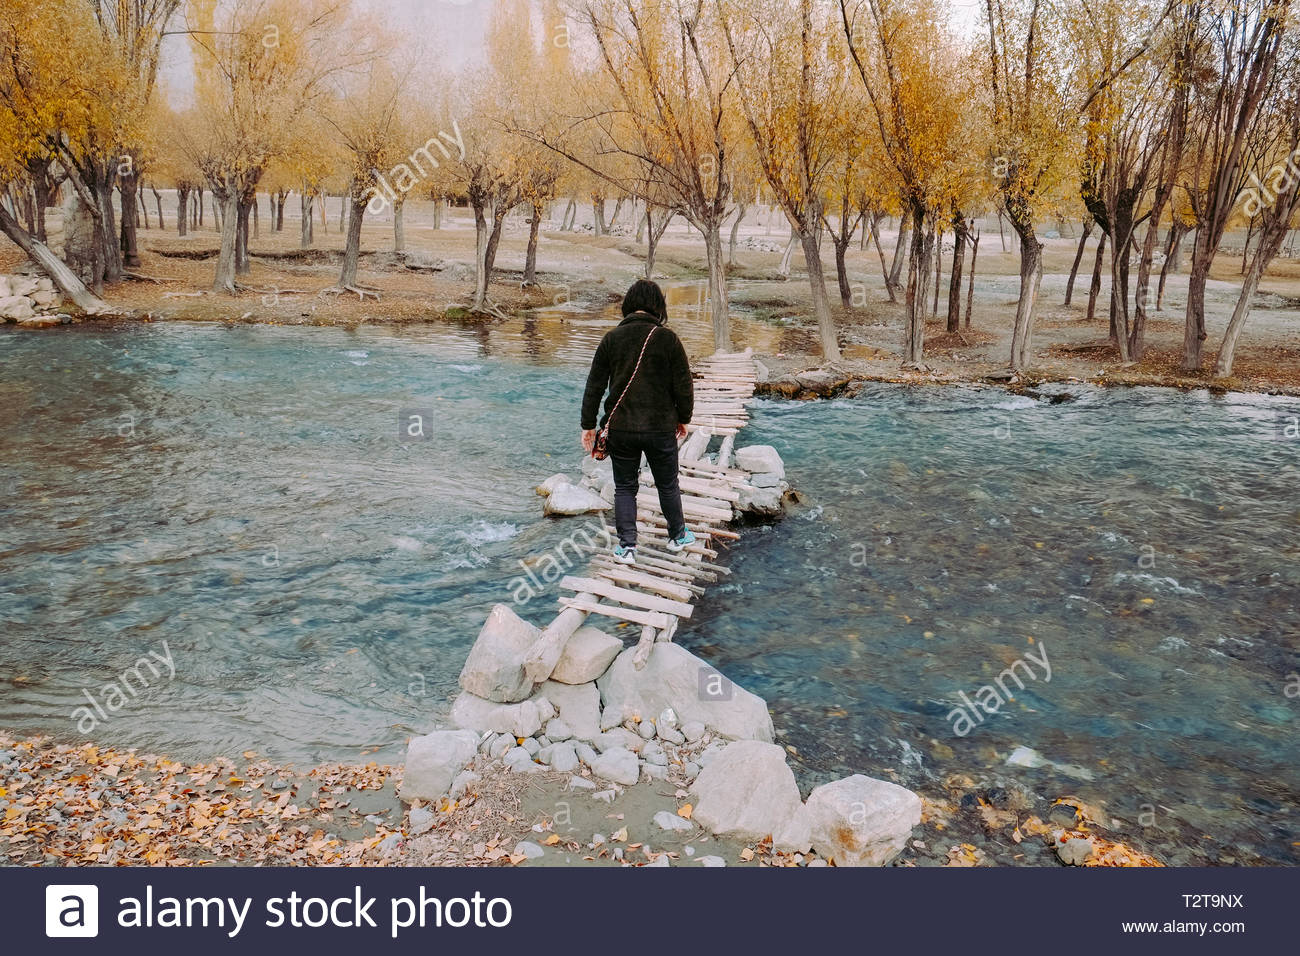 A young Asian woman traveller crossing a small wooden bridge over flowing Hargisa river. Autumn scene in Skardu. Gilgit Baltistan, Pakistan. - Stock Image